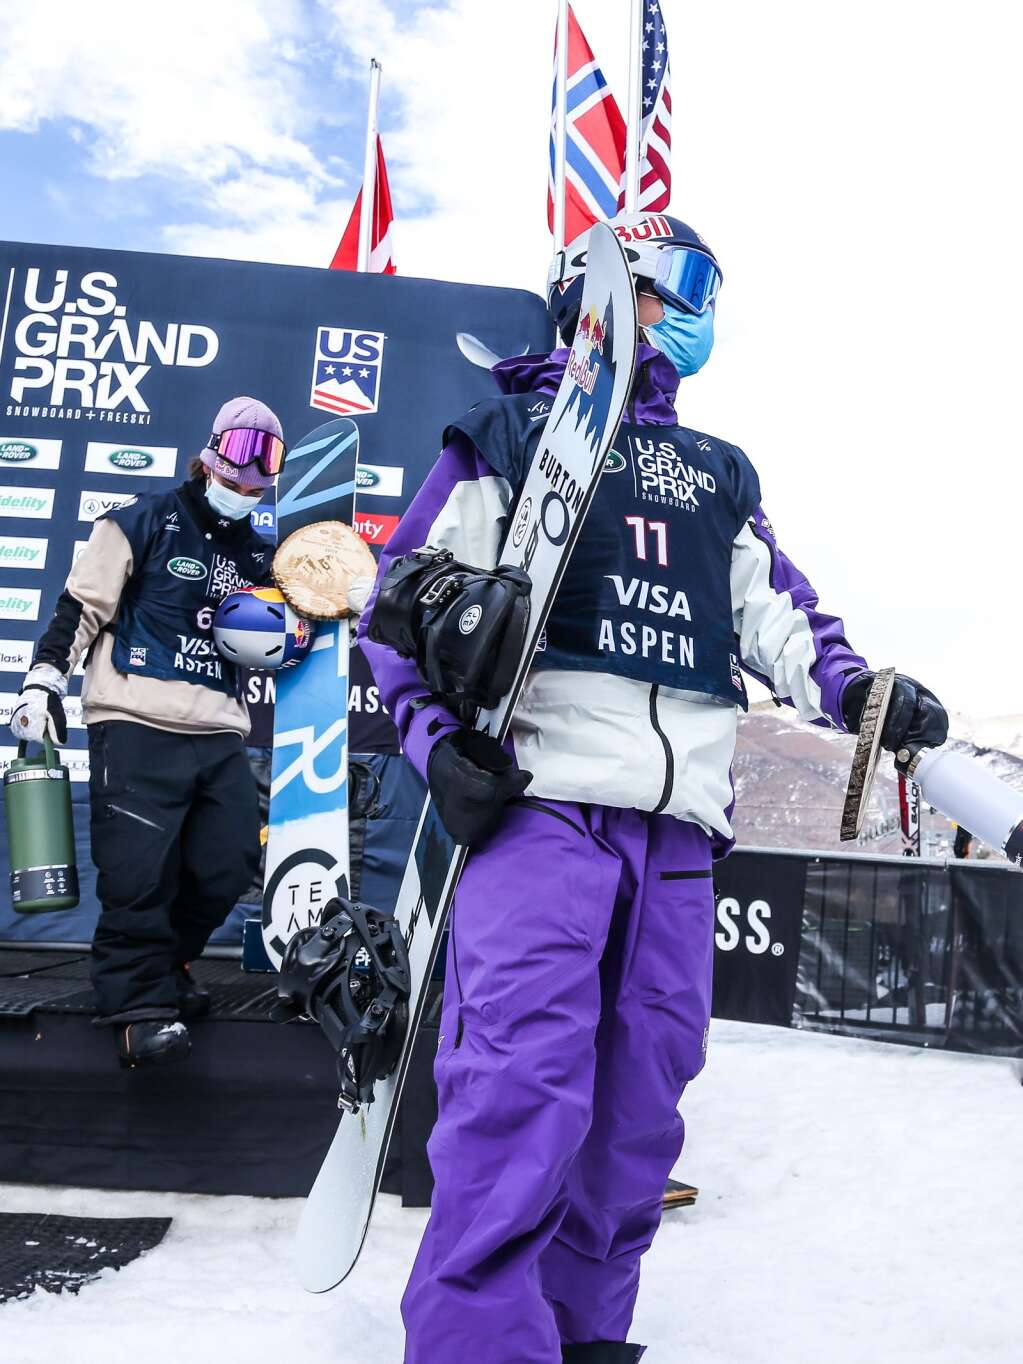 Canada's Mark McMorris walks off the podium after the men's snowboard slopestyle finals at the U.S. Grand Prix and World Cup on Saturday, March 20, 2021, at Buttermilk Ski Area in Aspen. Photo by Austin Colbert/The Aspen Times.